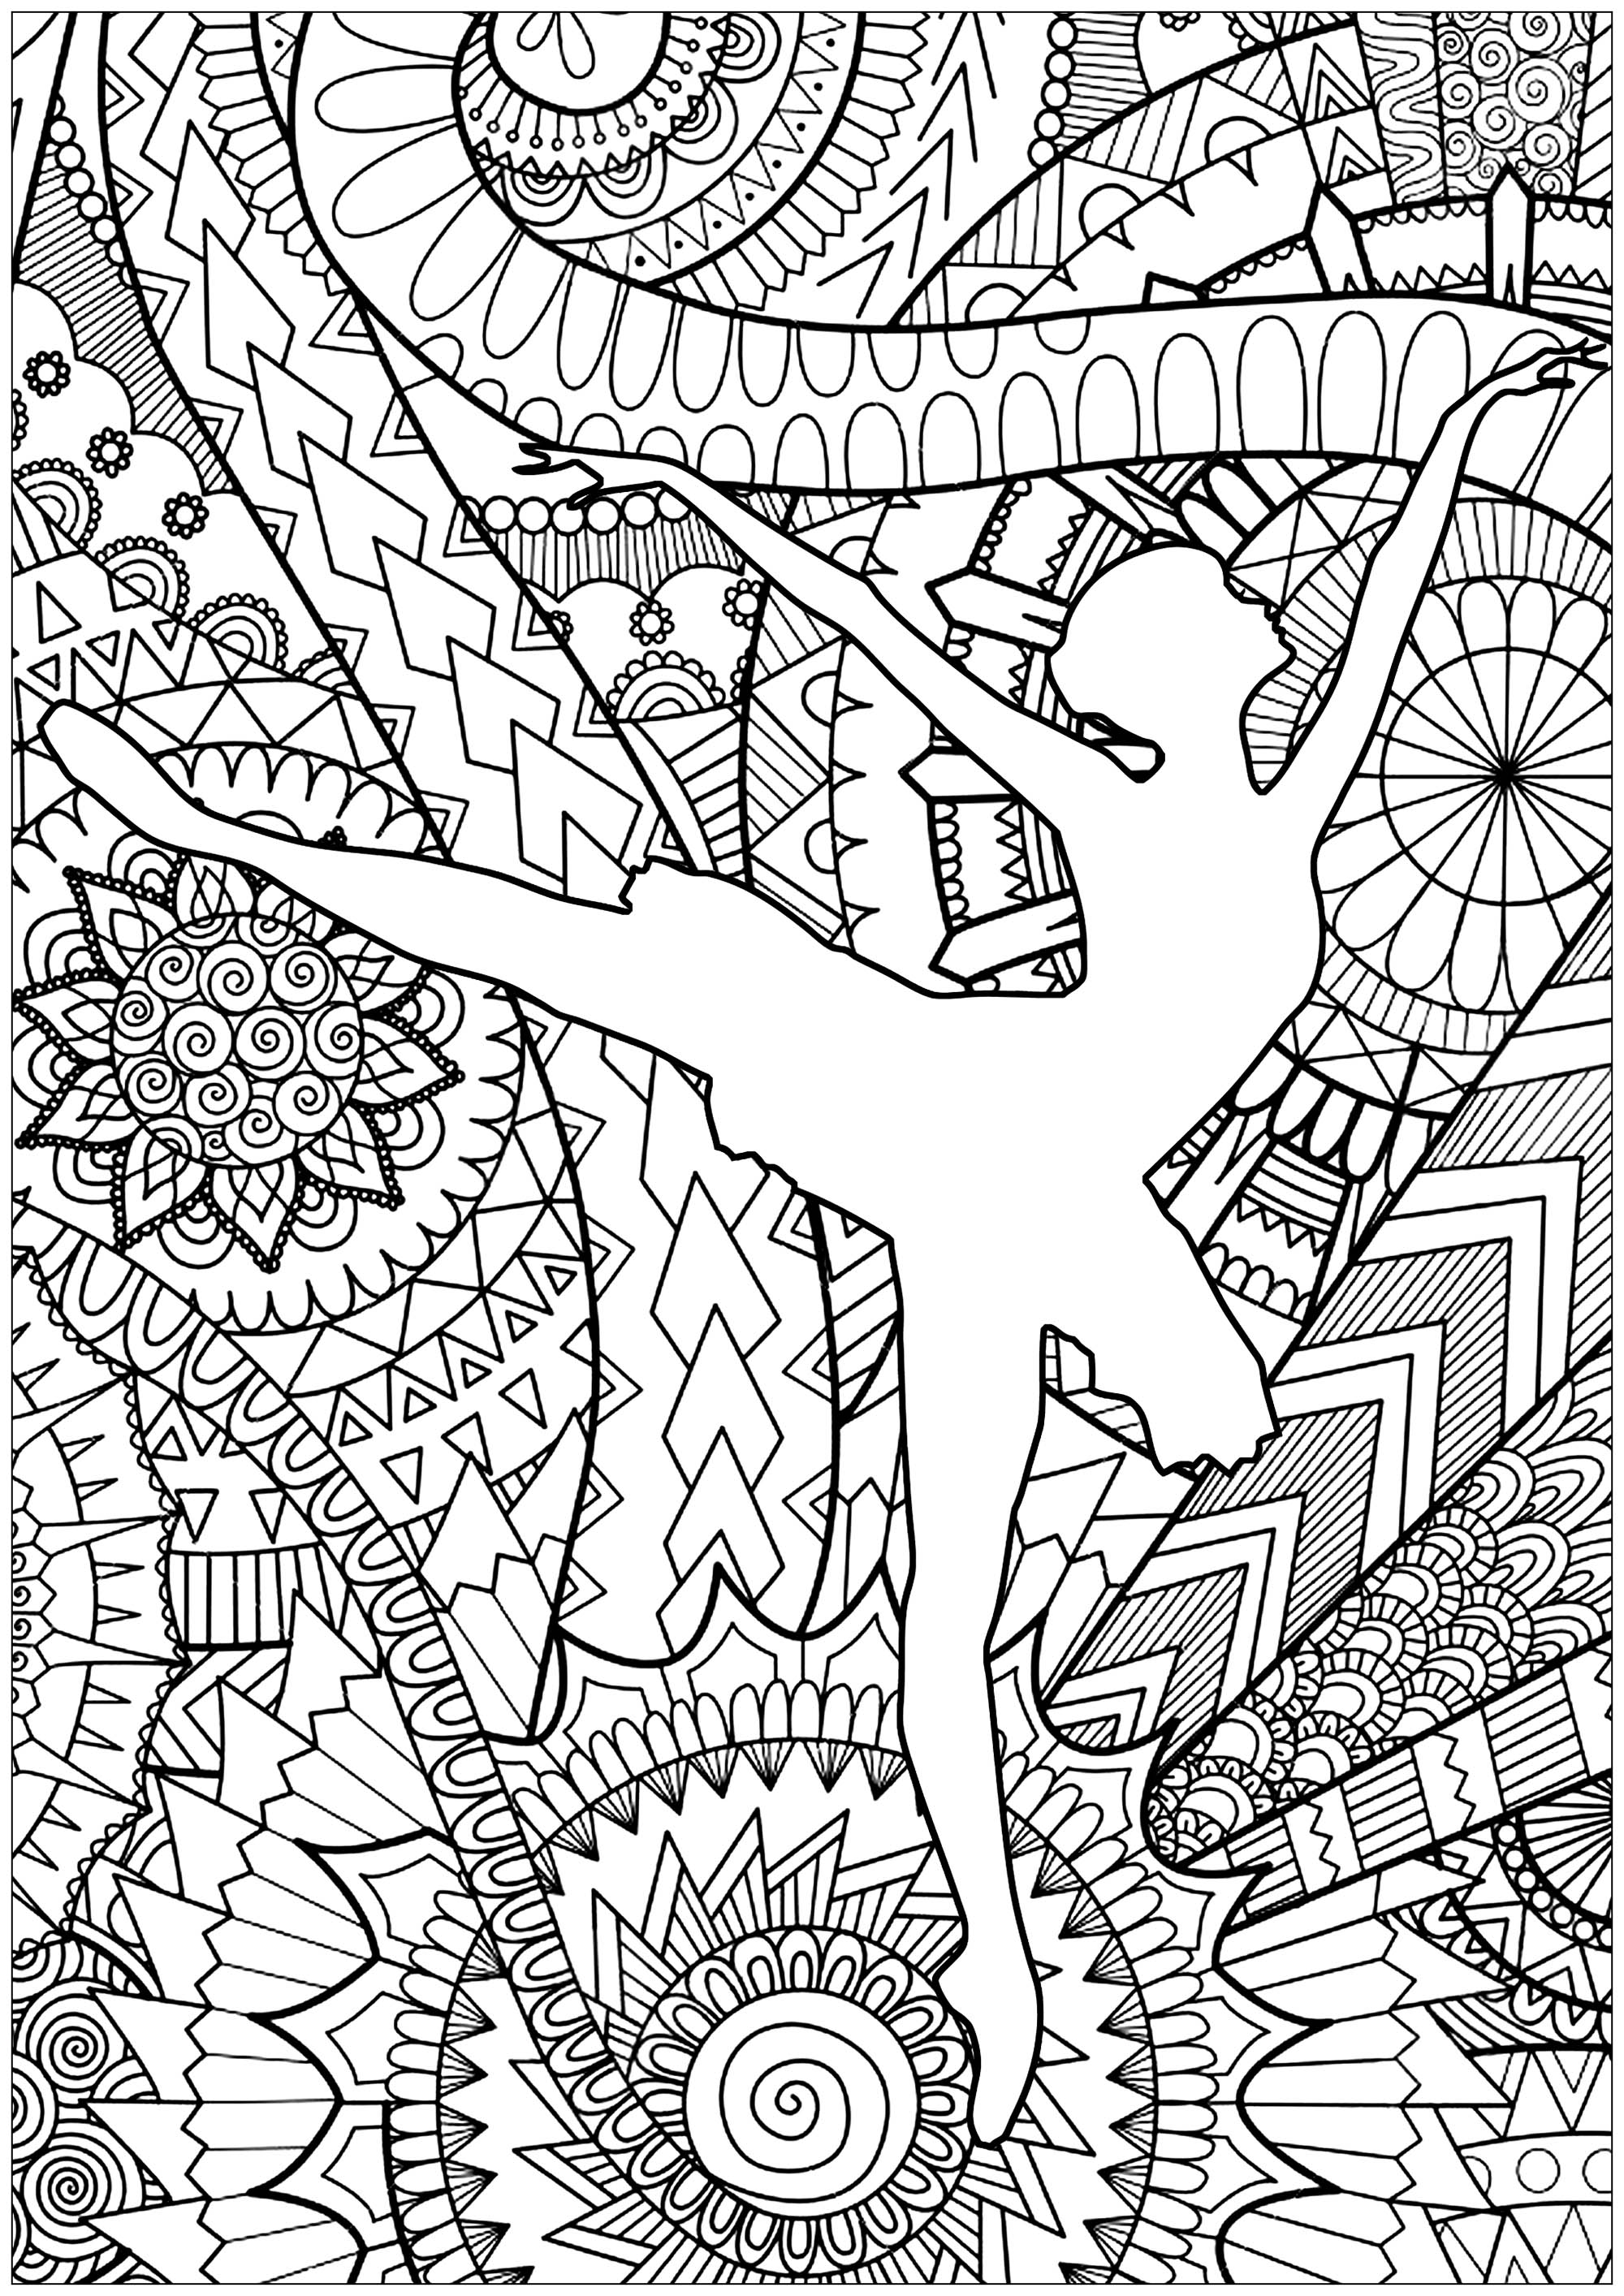 ballet coloring pages printable 80 coloring page of a ballerina dance coloring ballet pages printable coloring